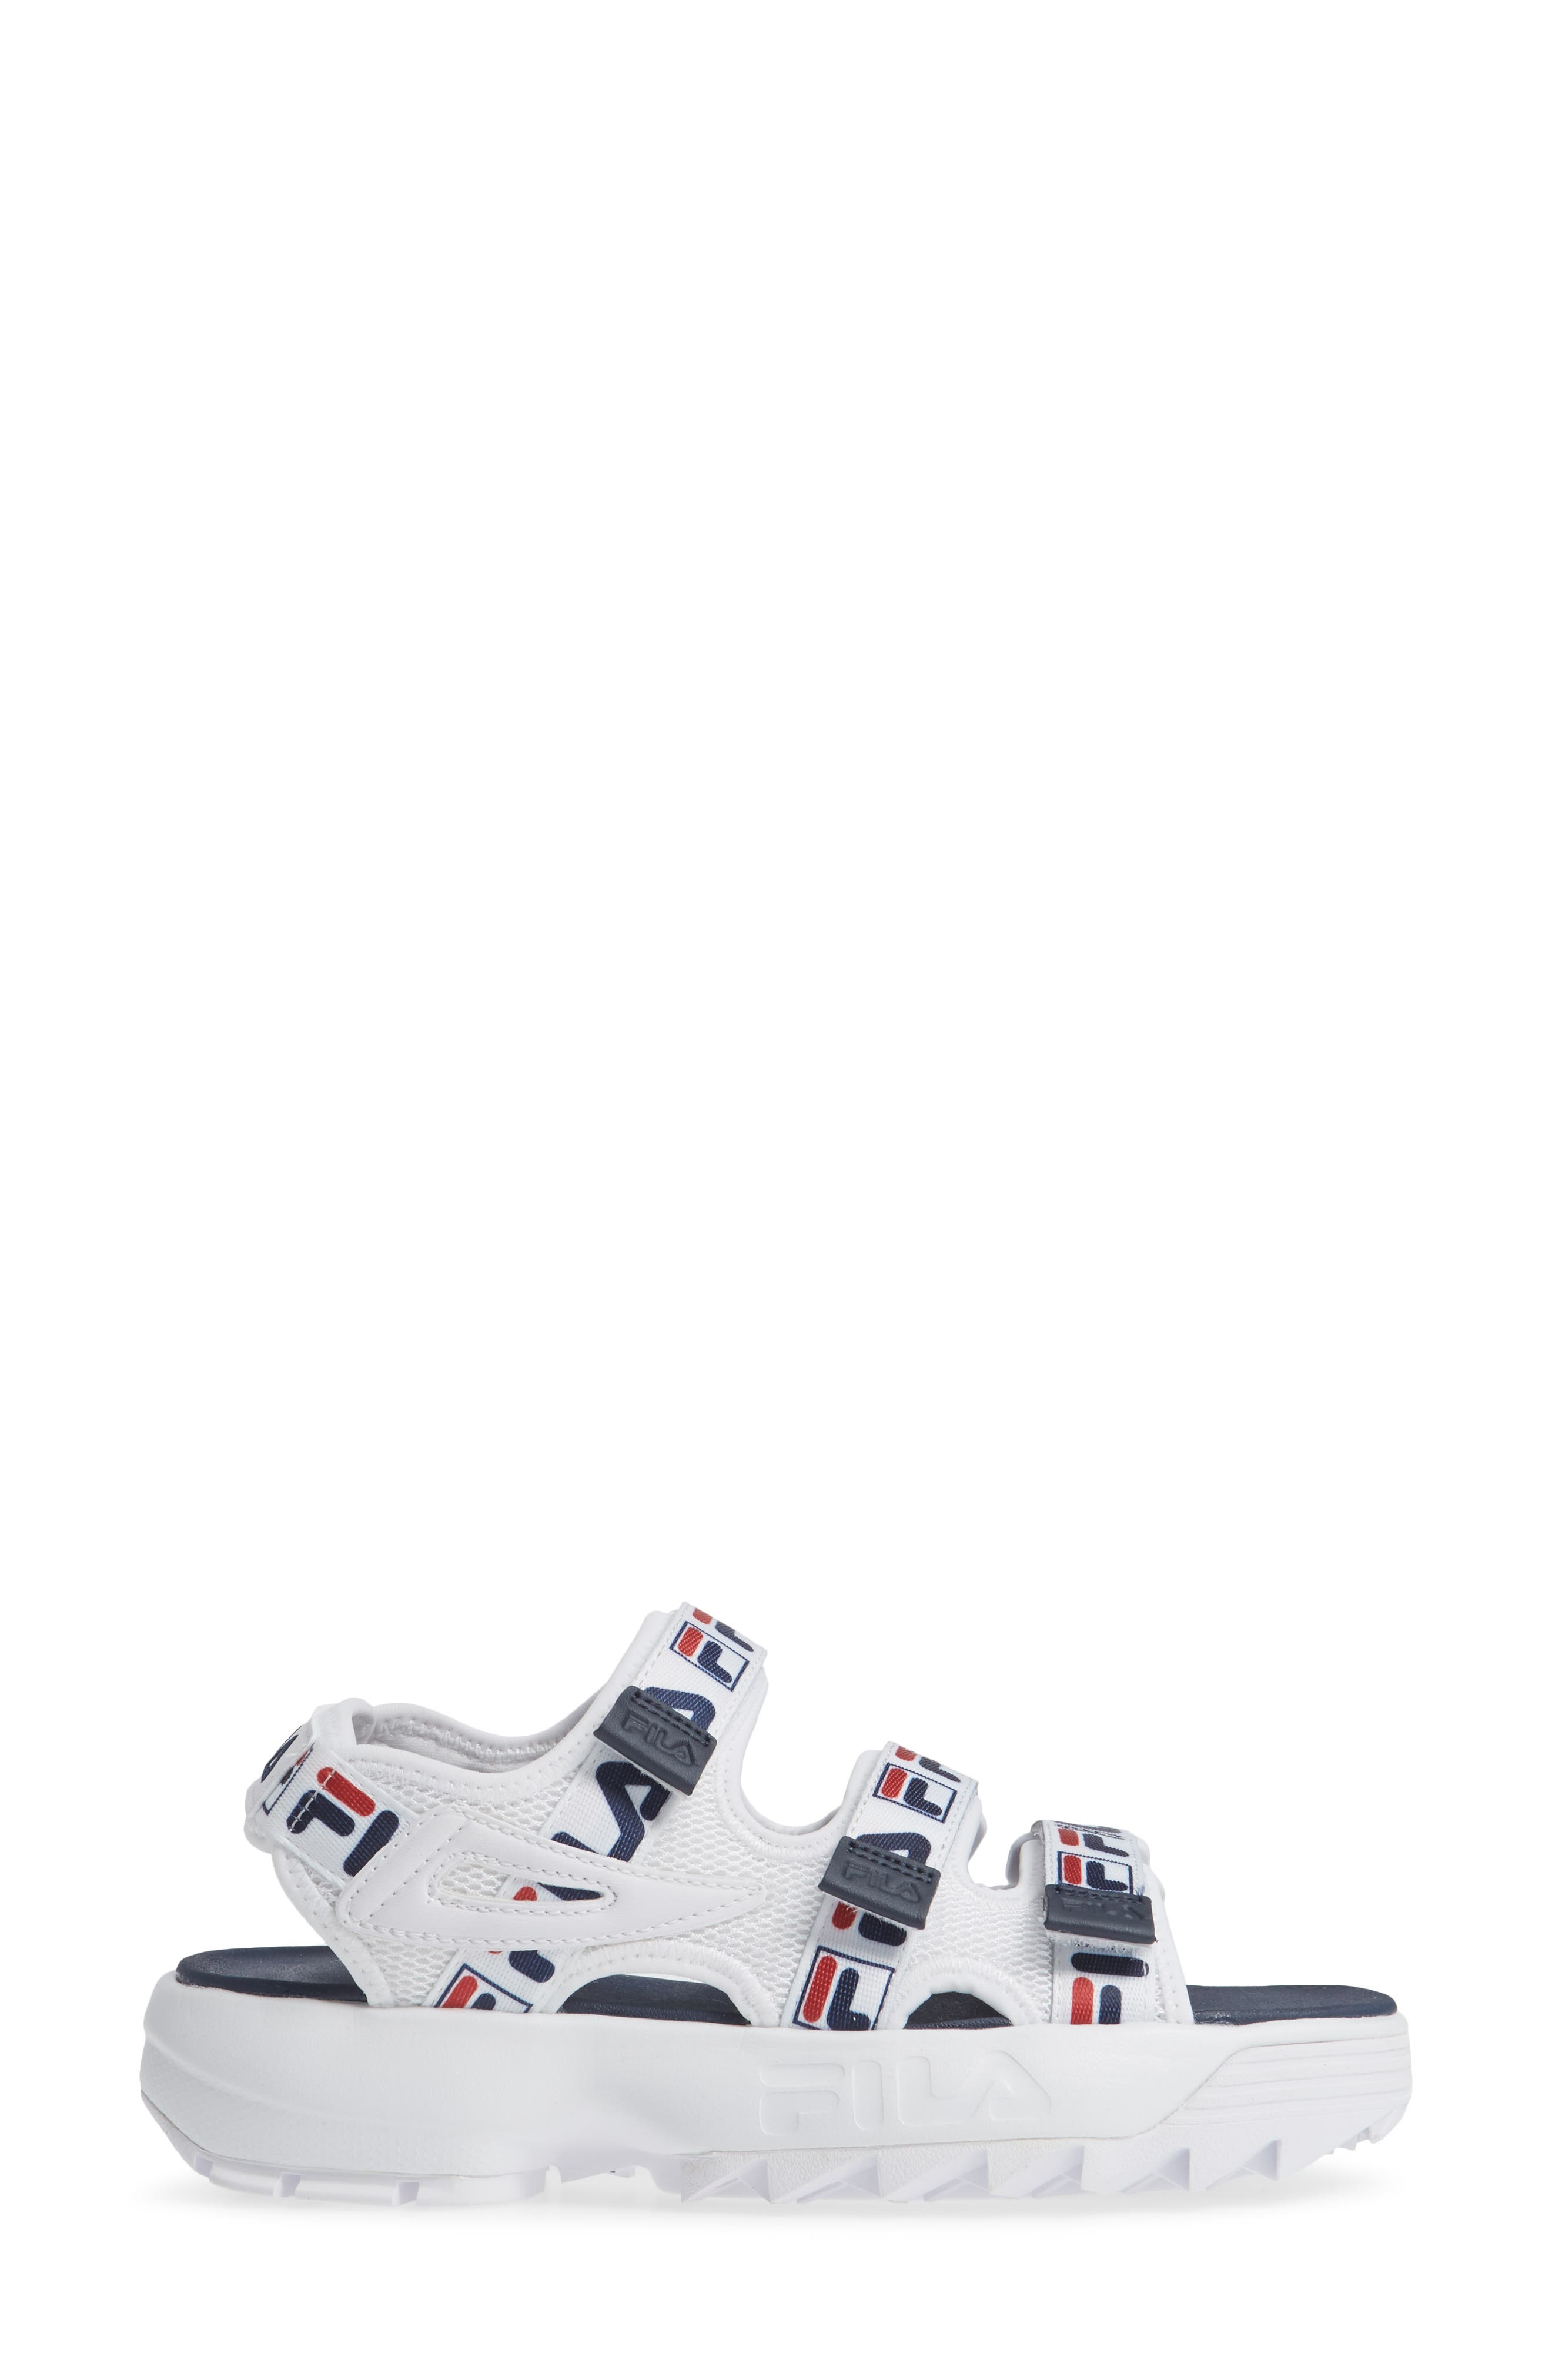 Disruptor Sandal,                             Alternate thumbnail 3, color,                             WHITE/ FILA NAVY